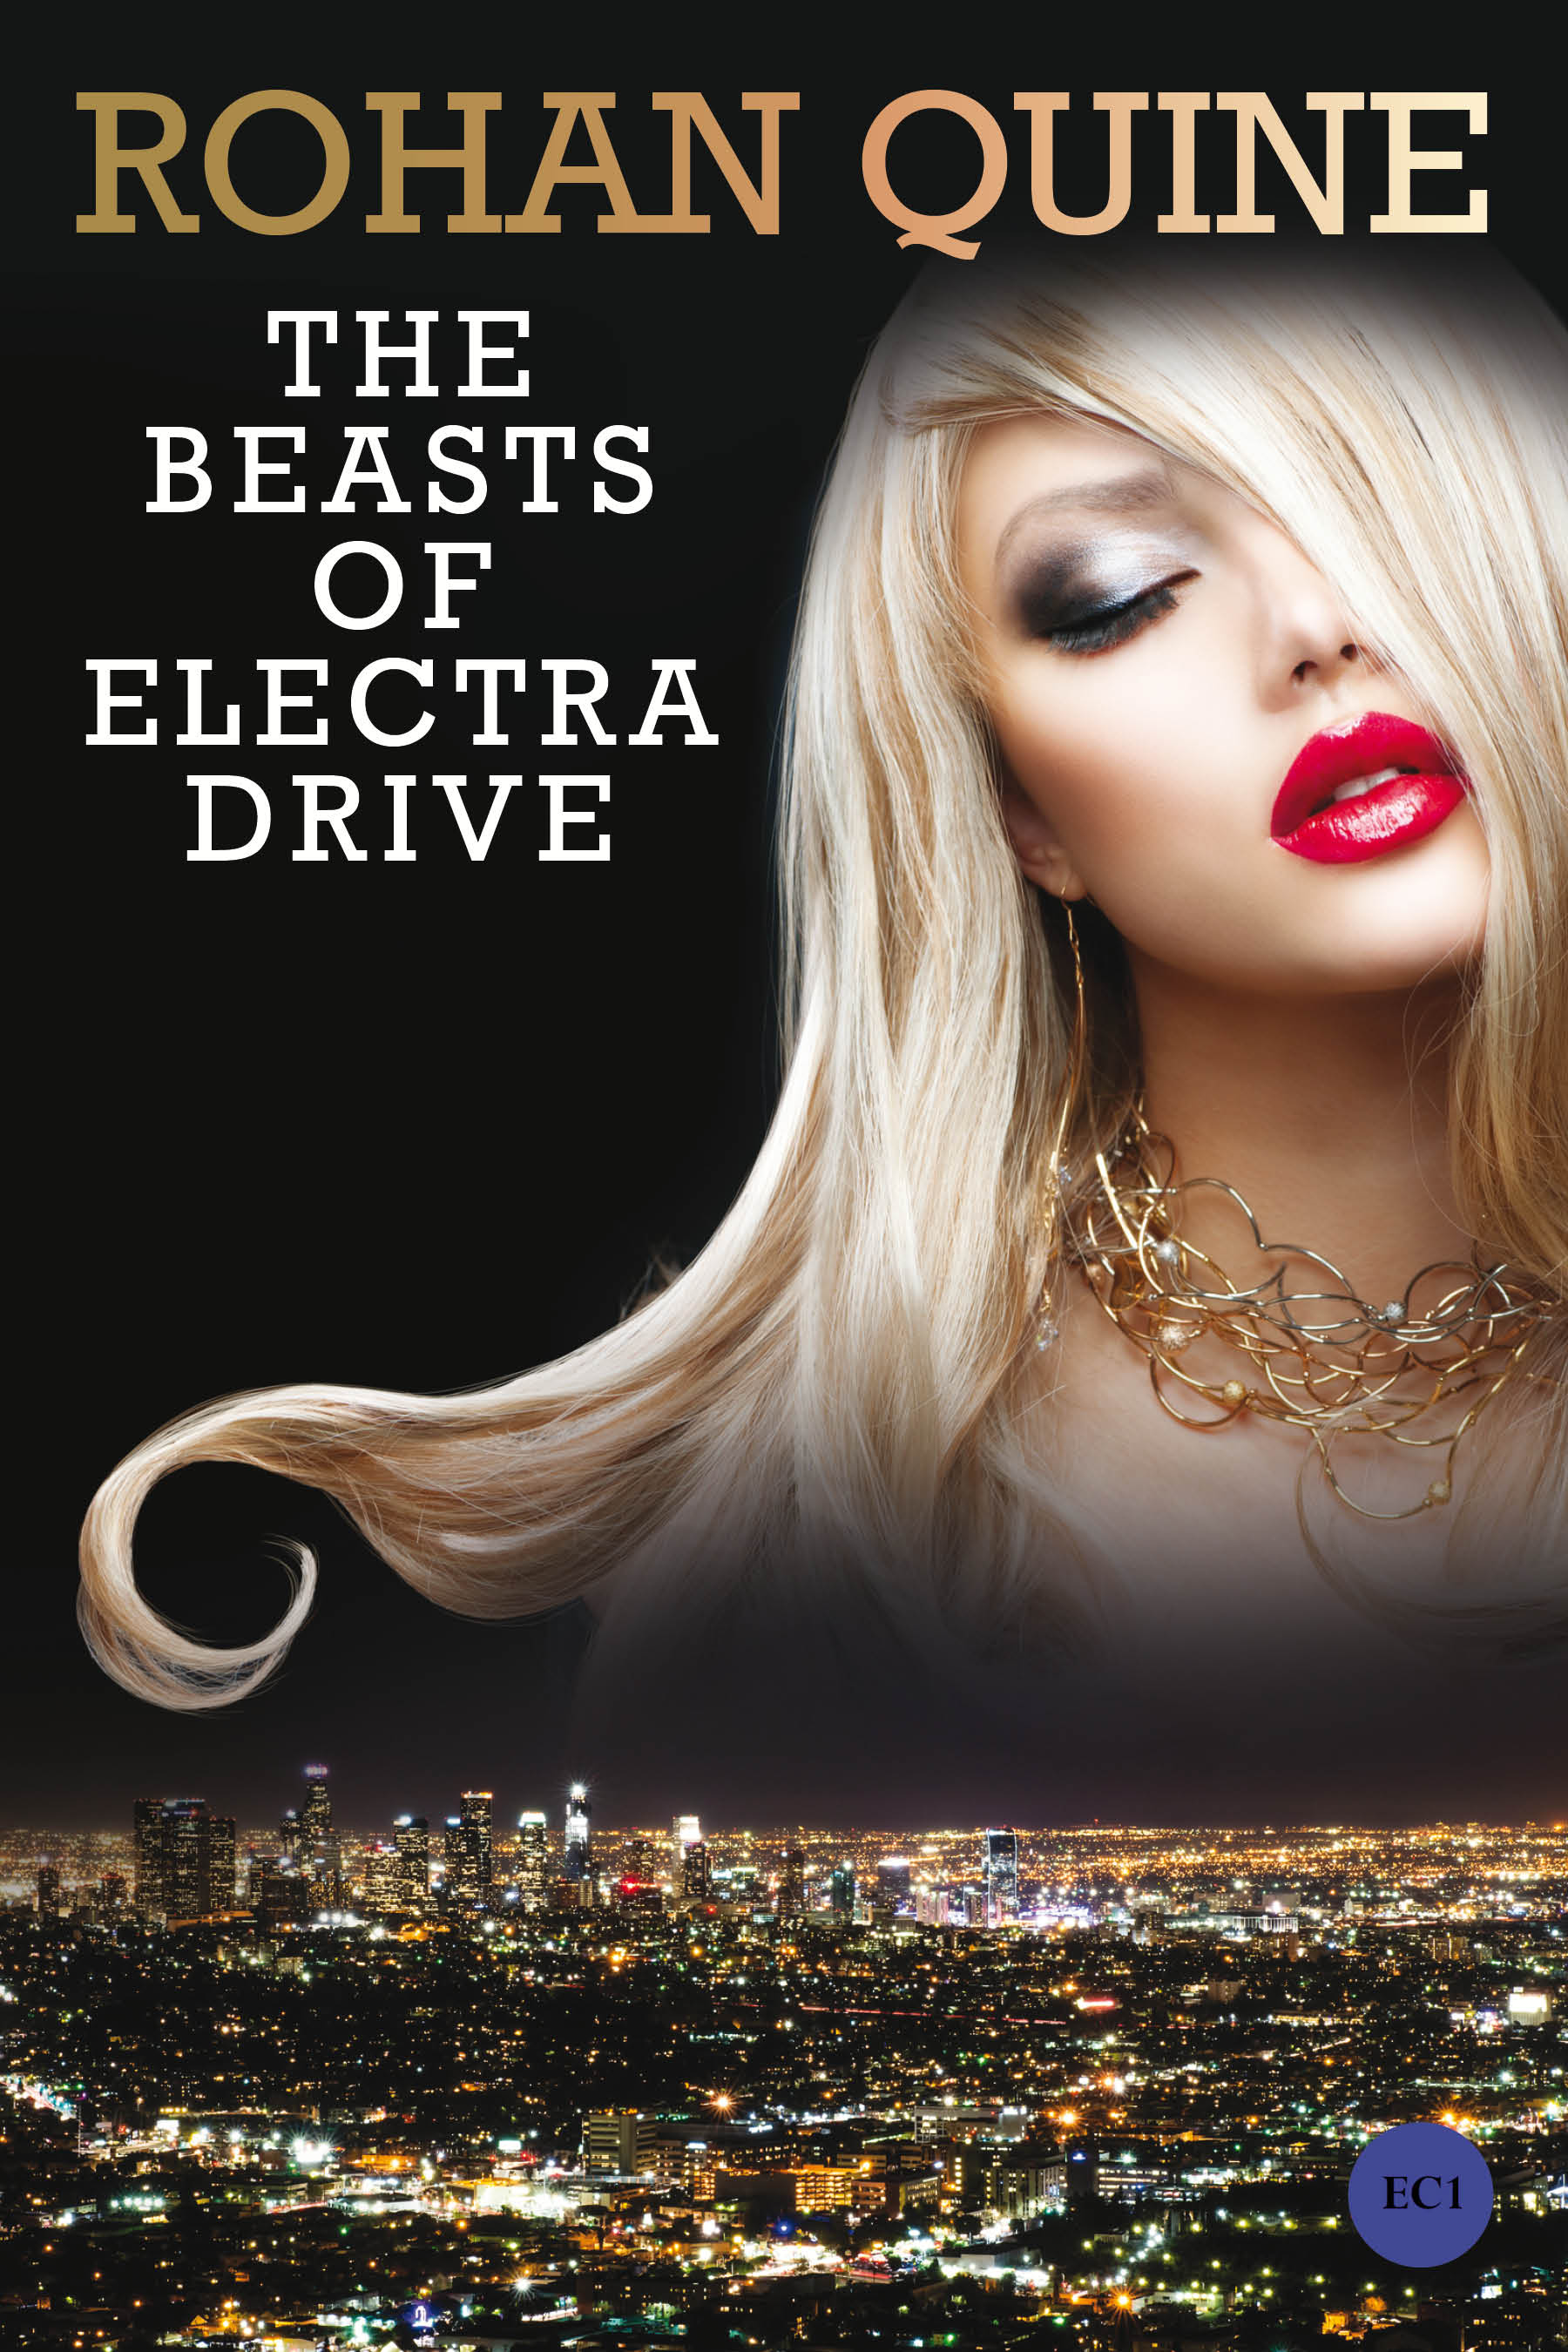 THE BEASTS OF ELECTRA DRIVE (novel) by Rohan Quine - paperback front cover (literary fiction, magical realism, horror)